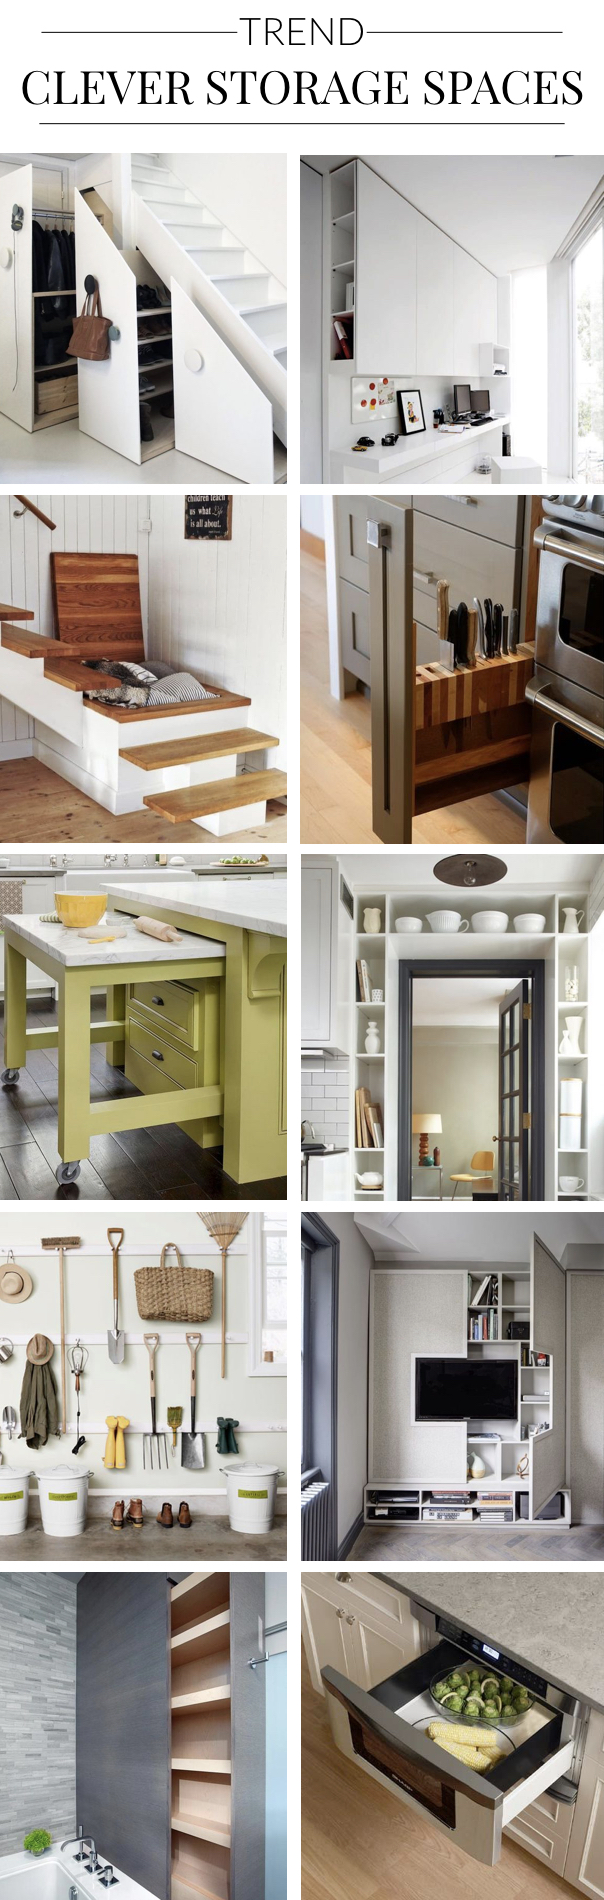 Pulp-Home-Clever-Storage